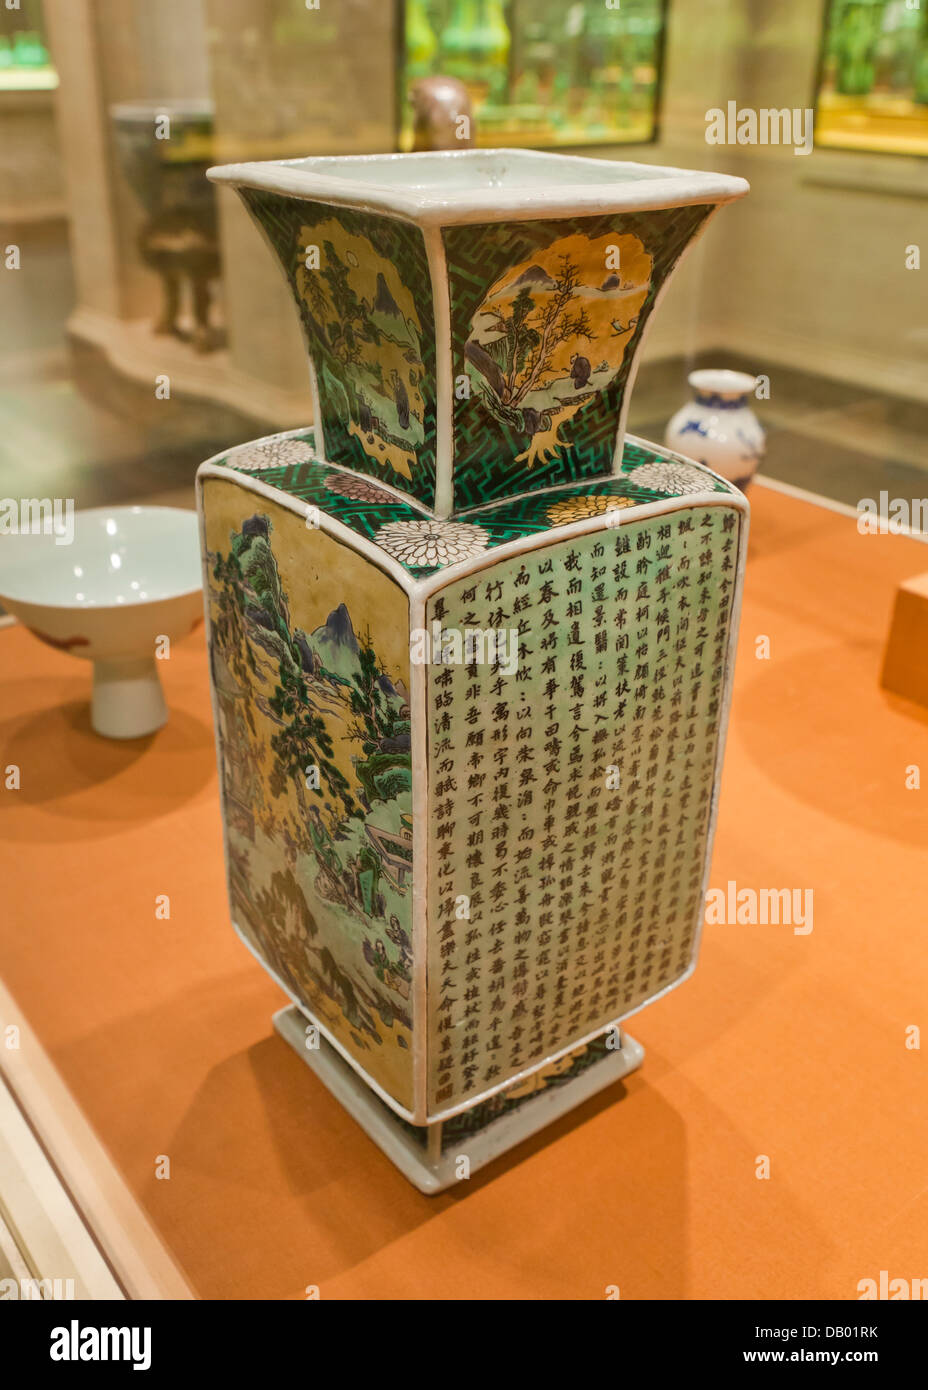 Rectangular Vase with Poems - famille jaune / famille moire enamels on biscuit porcelain - China, Kangxi reign, - Stock Image